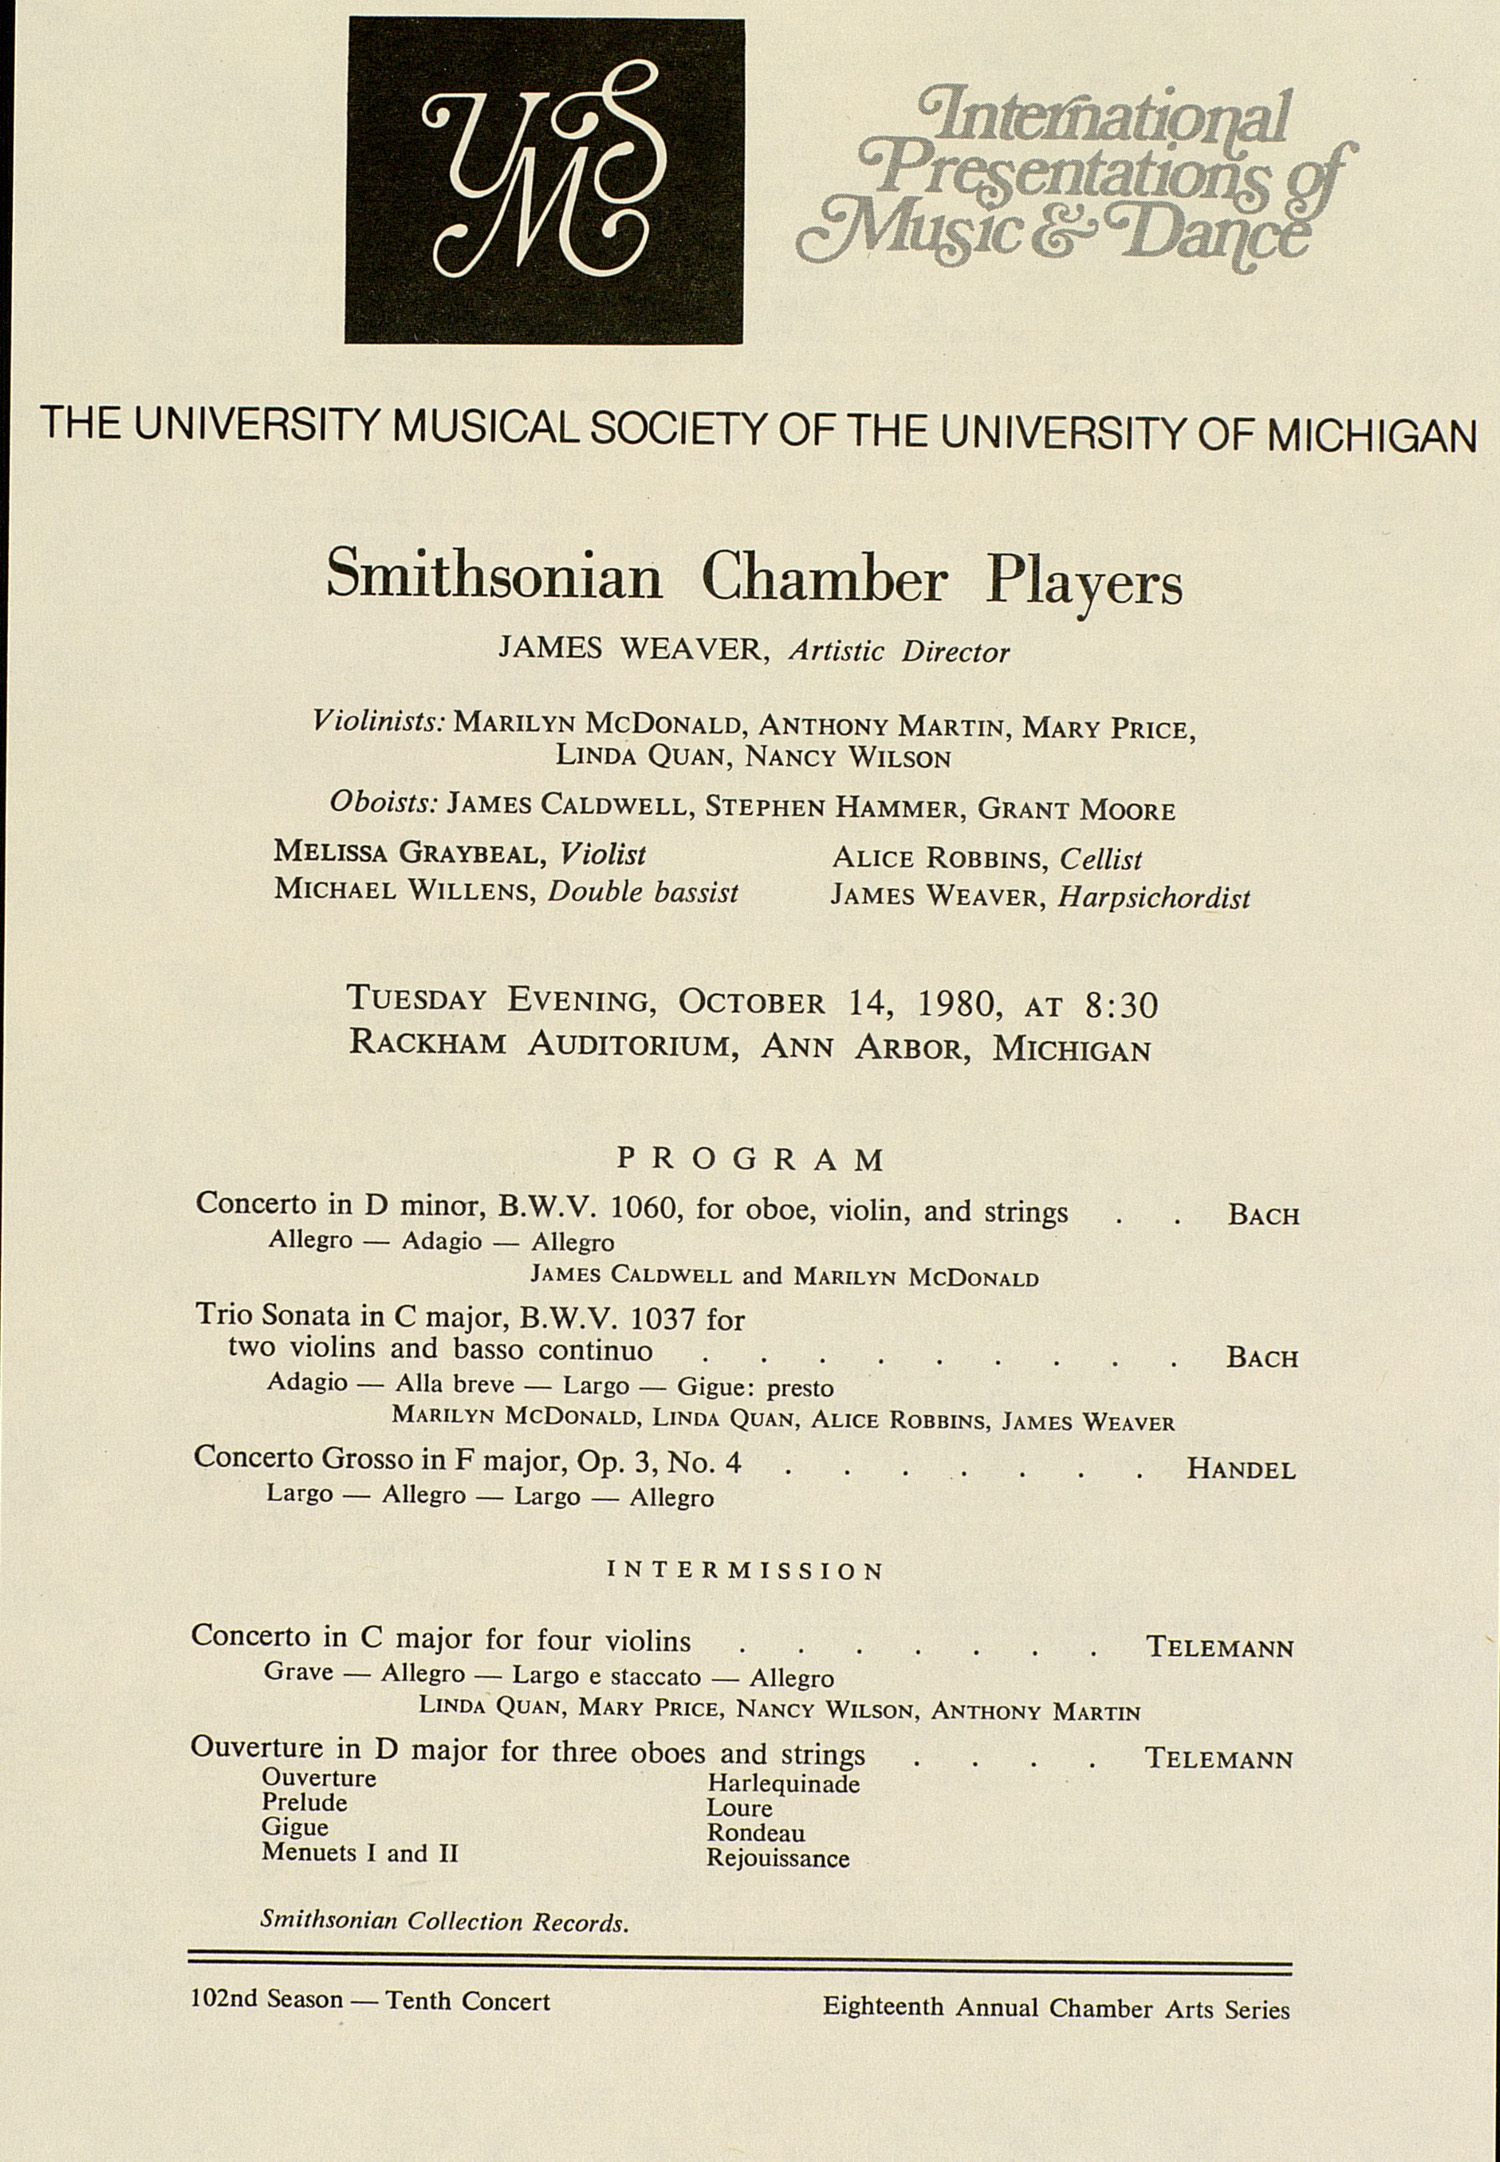 UMS Concert Program, October 14, 1980: Smithsonian Chamber Players --  image